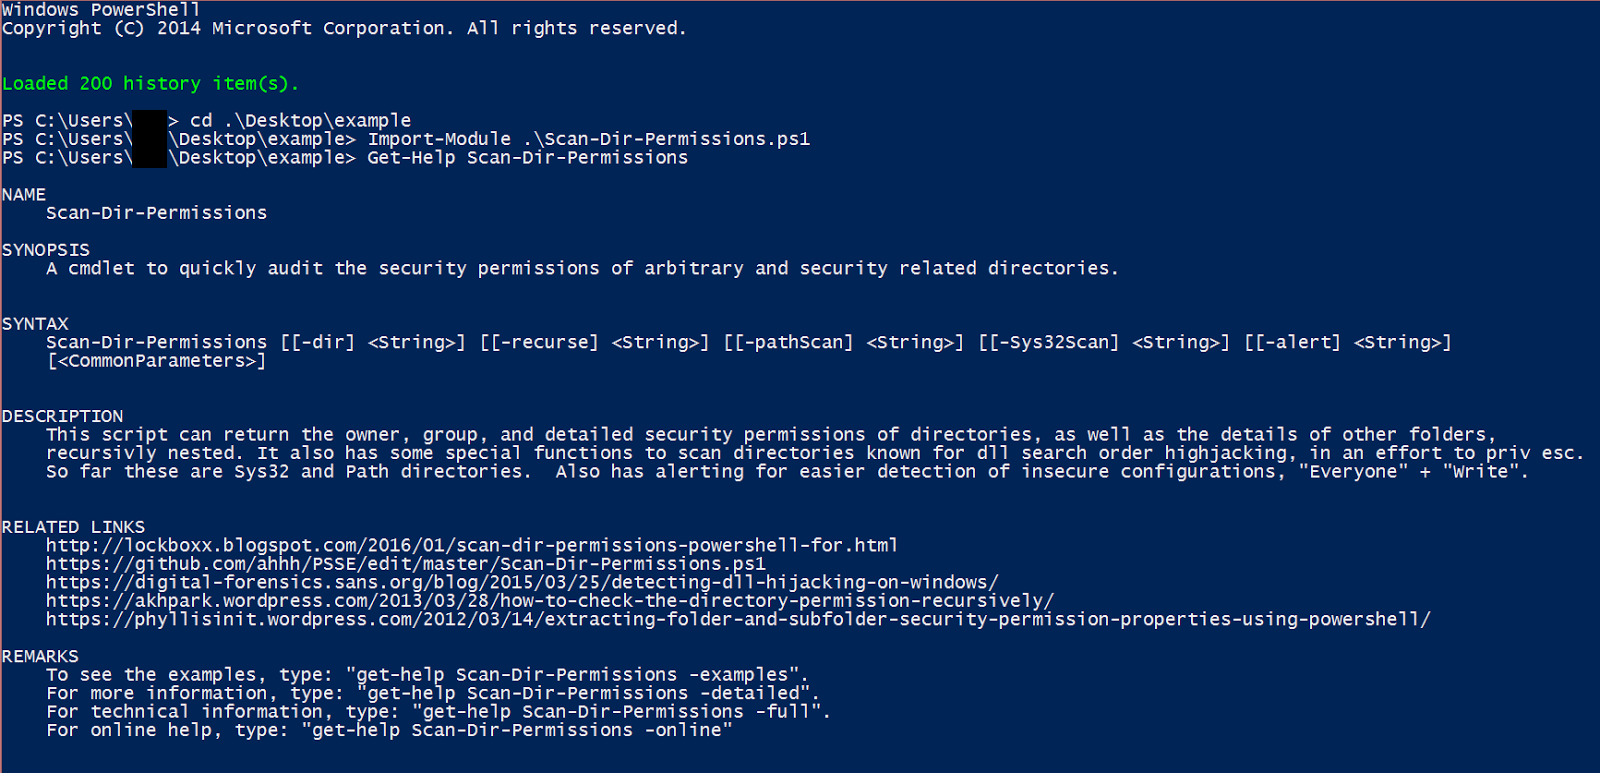 Scan Dir Permissions - PowerShell for Pentesters (PSSE